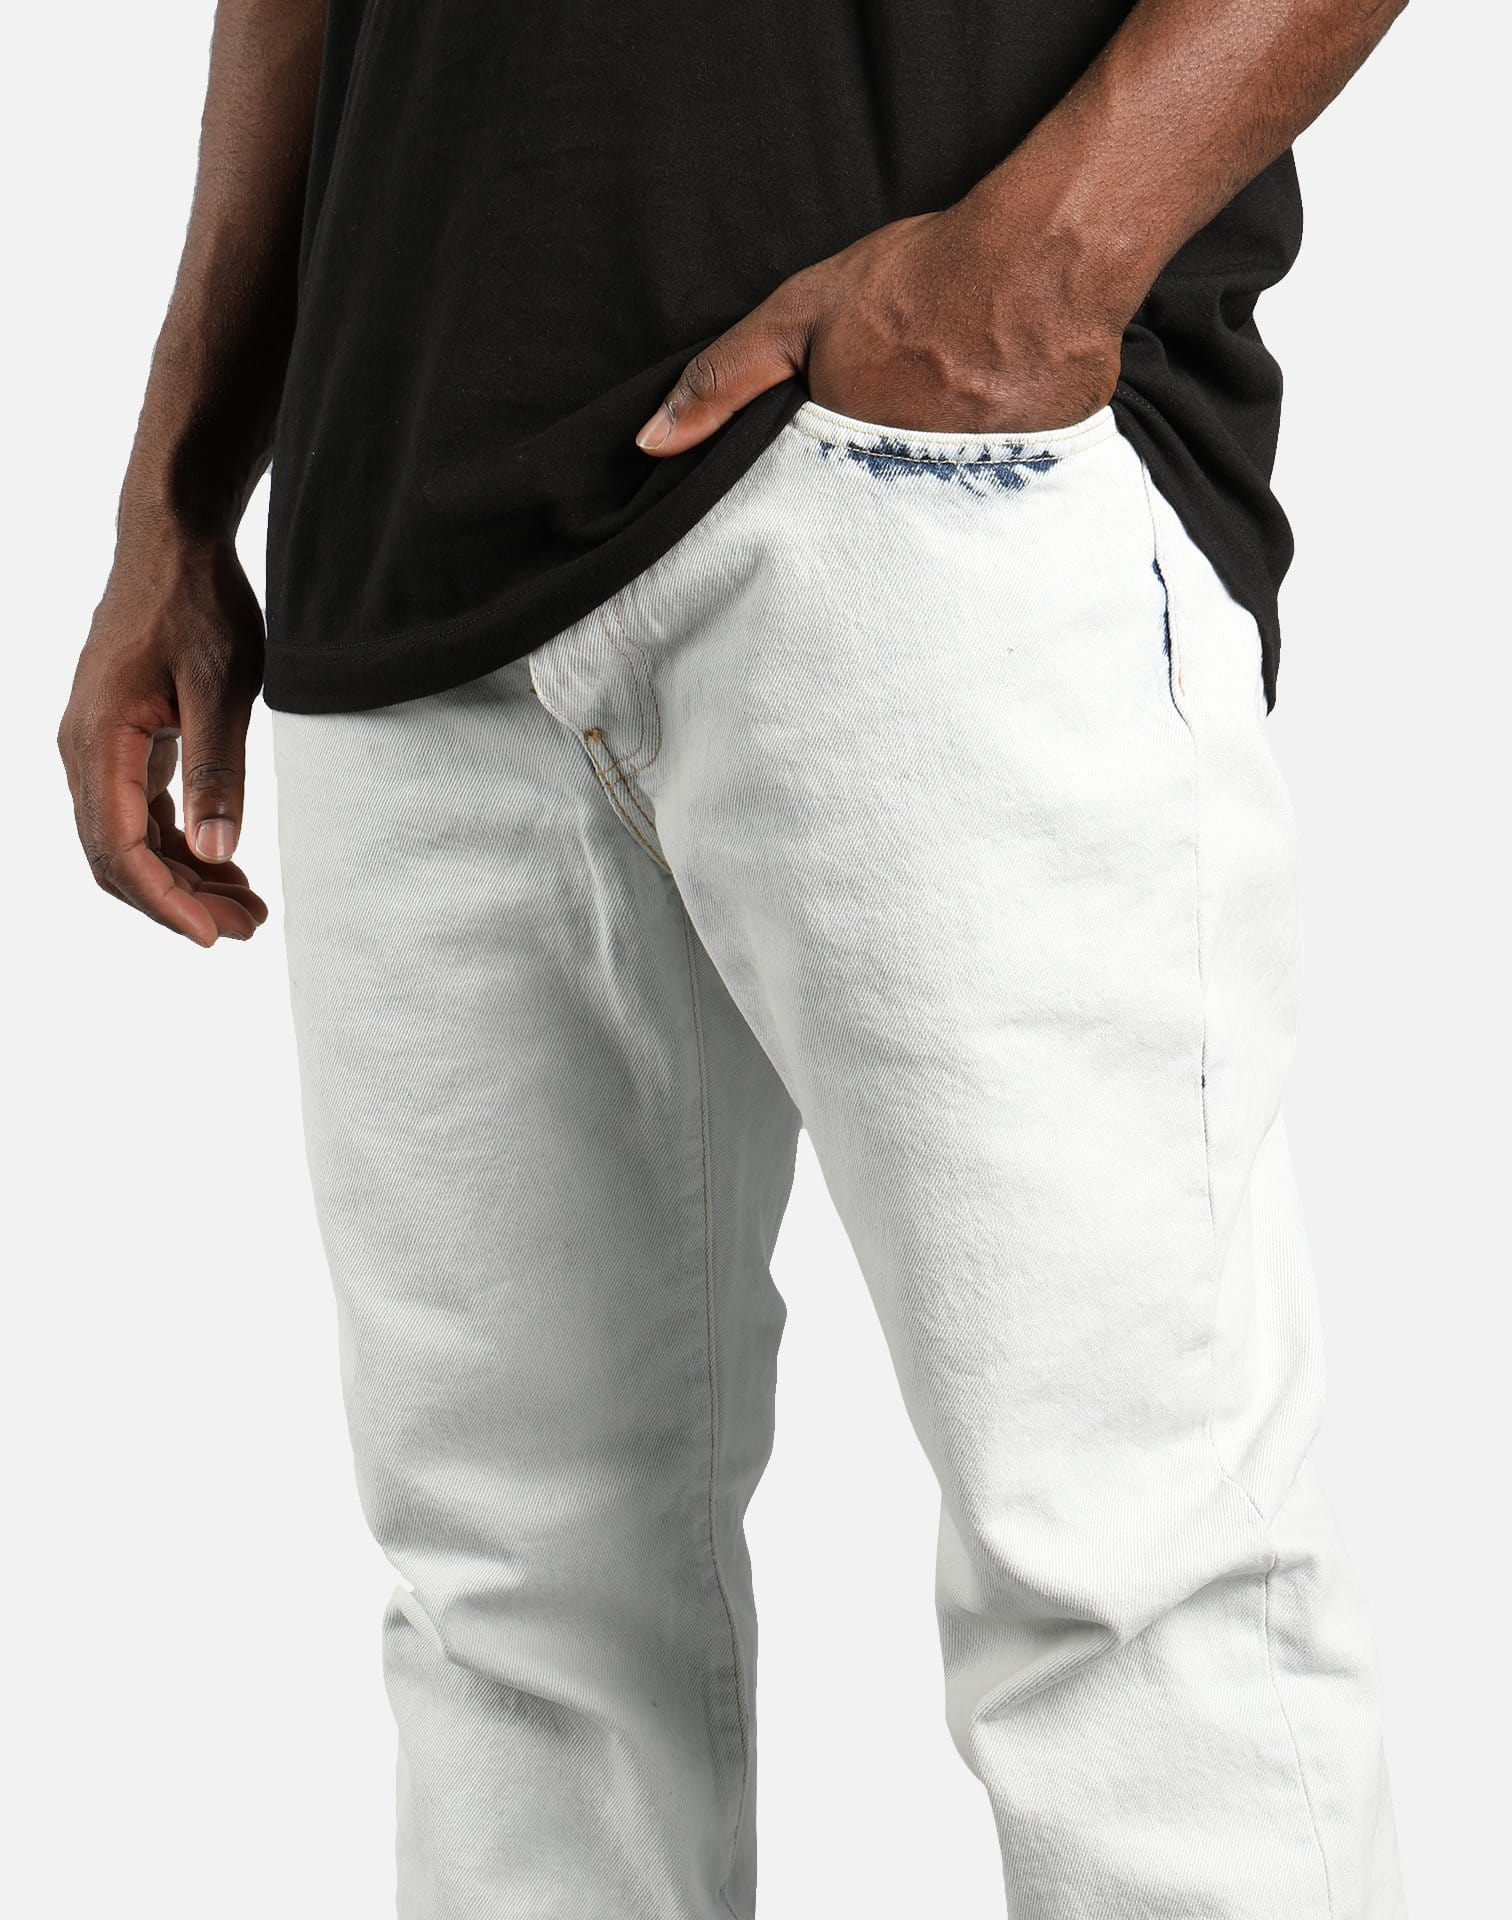 541 ATHLETIC-FIT JEANS